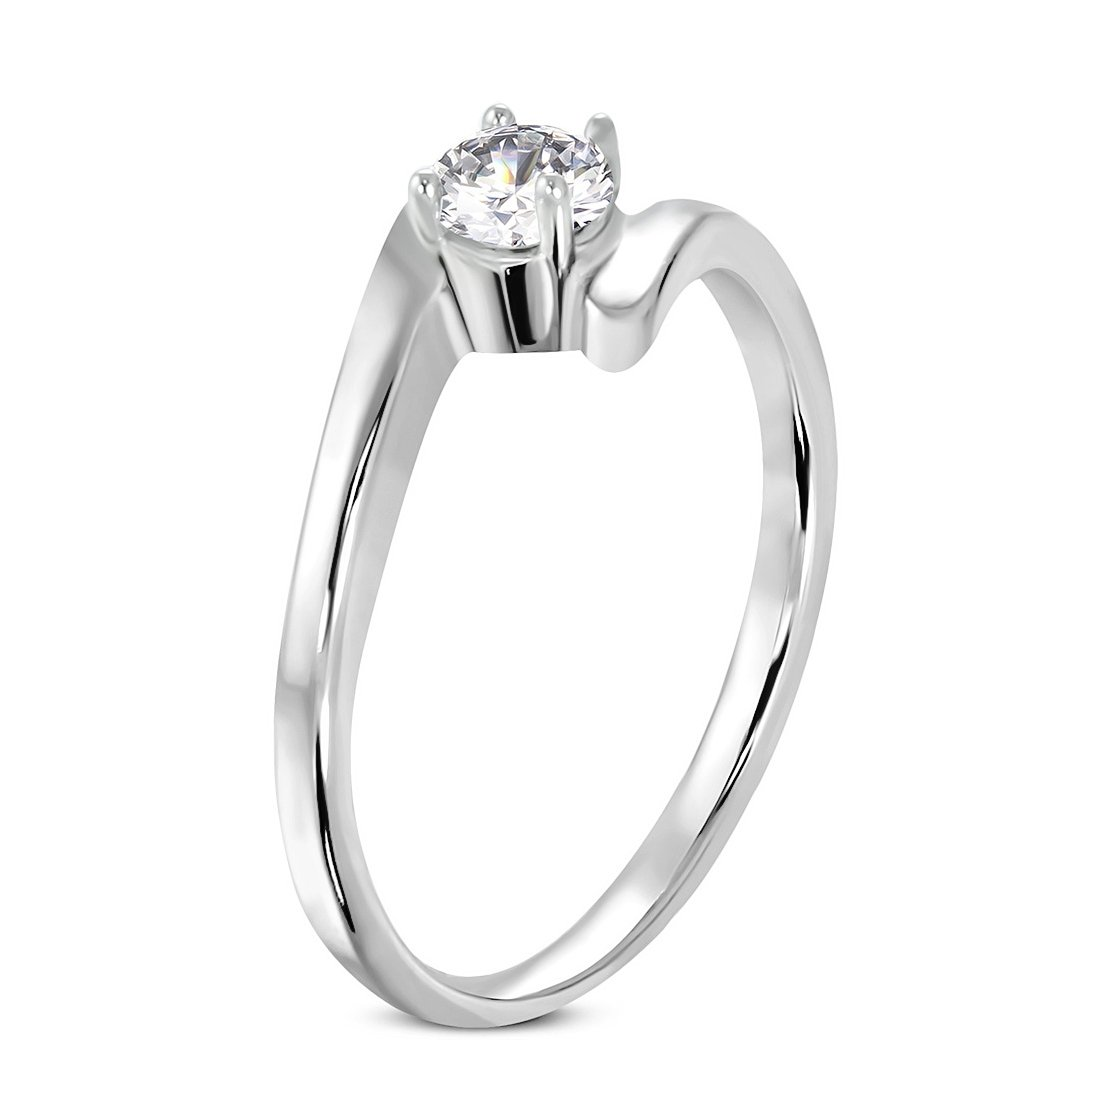 Stainless Steel Prong-Set Round Engagement Bypass Ring with Clear CZ